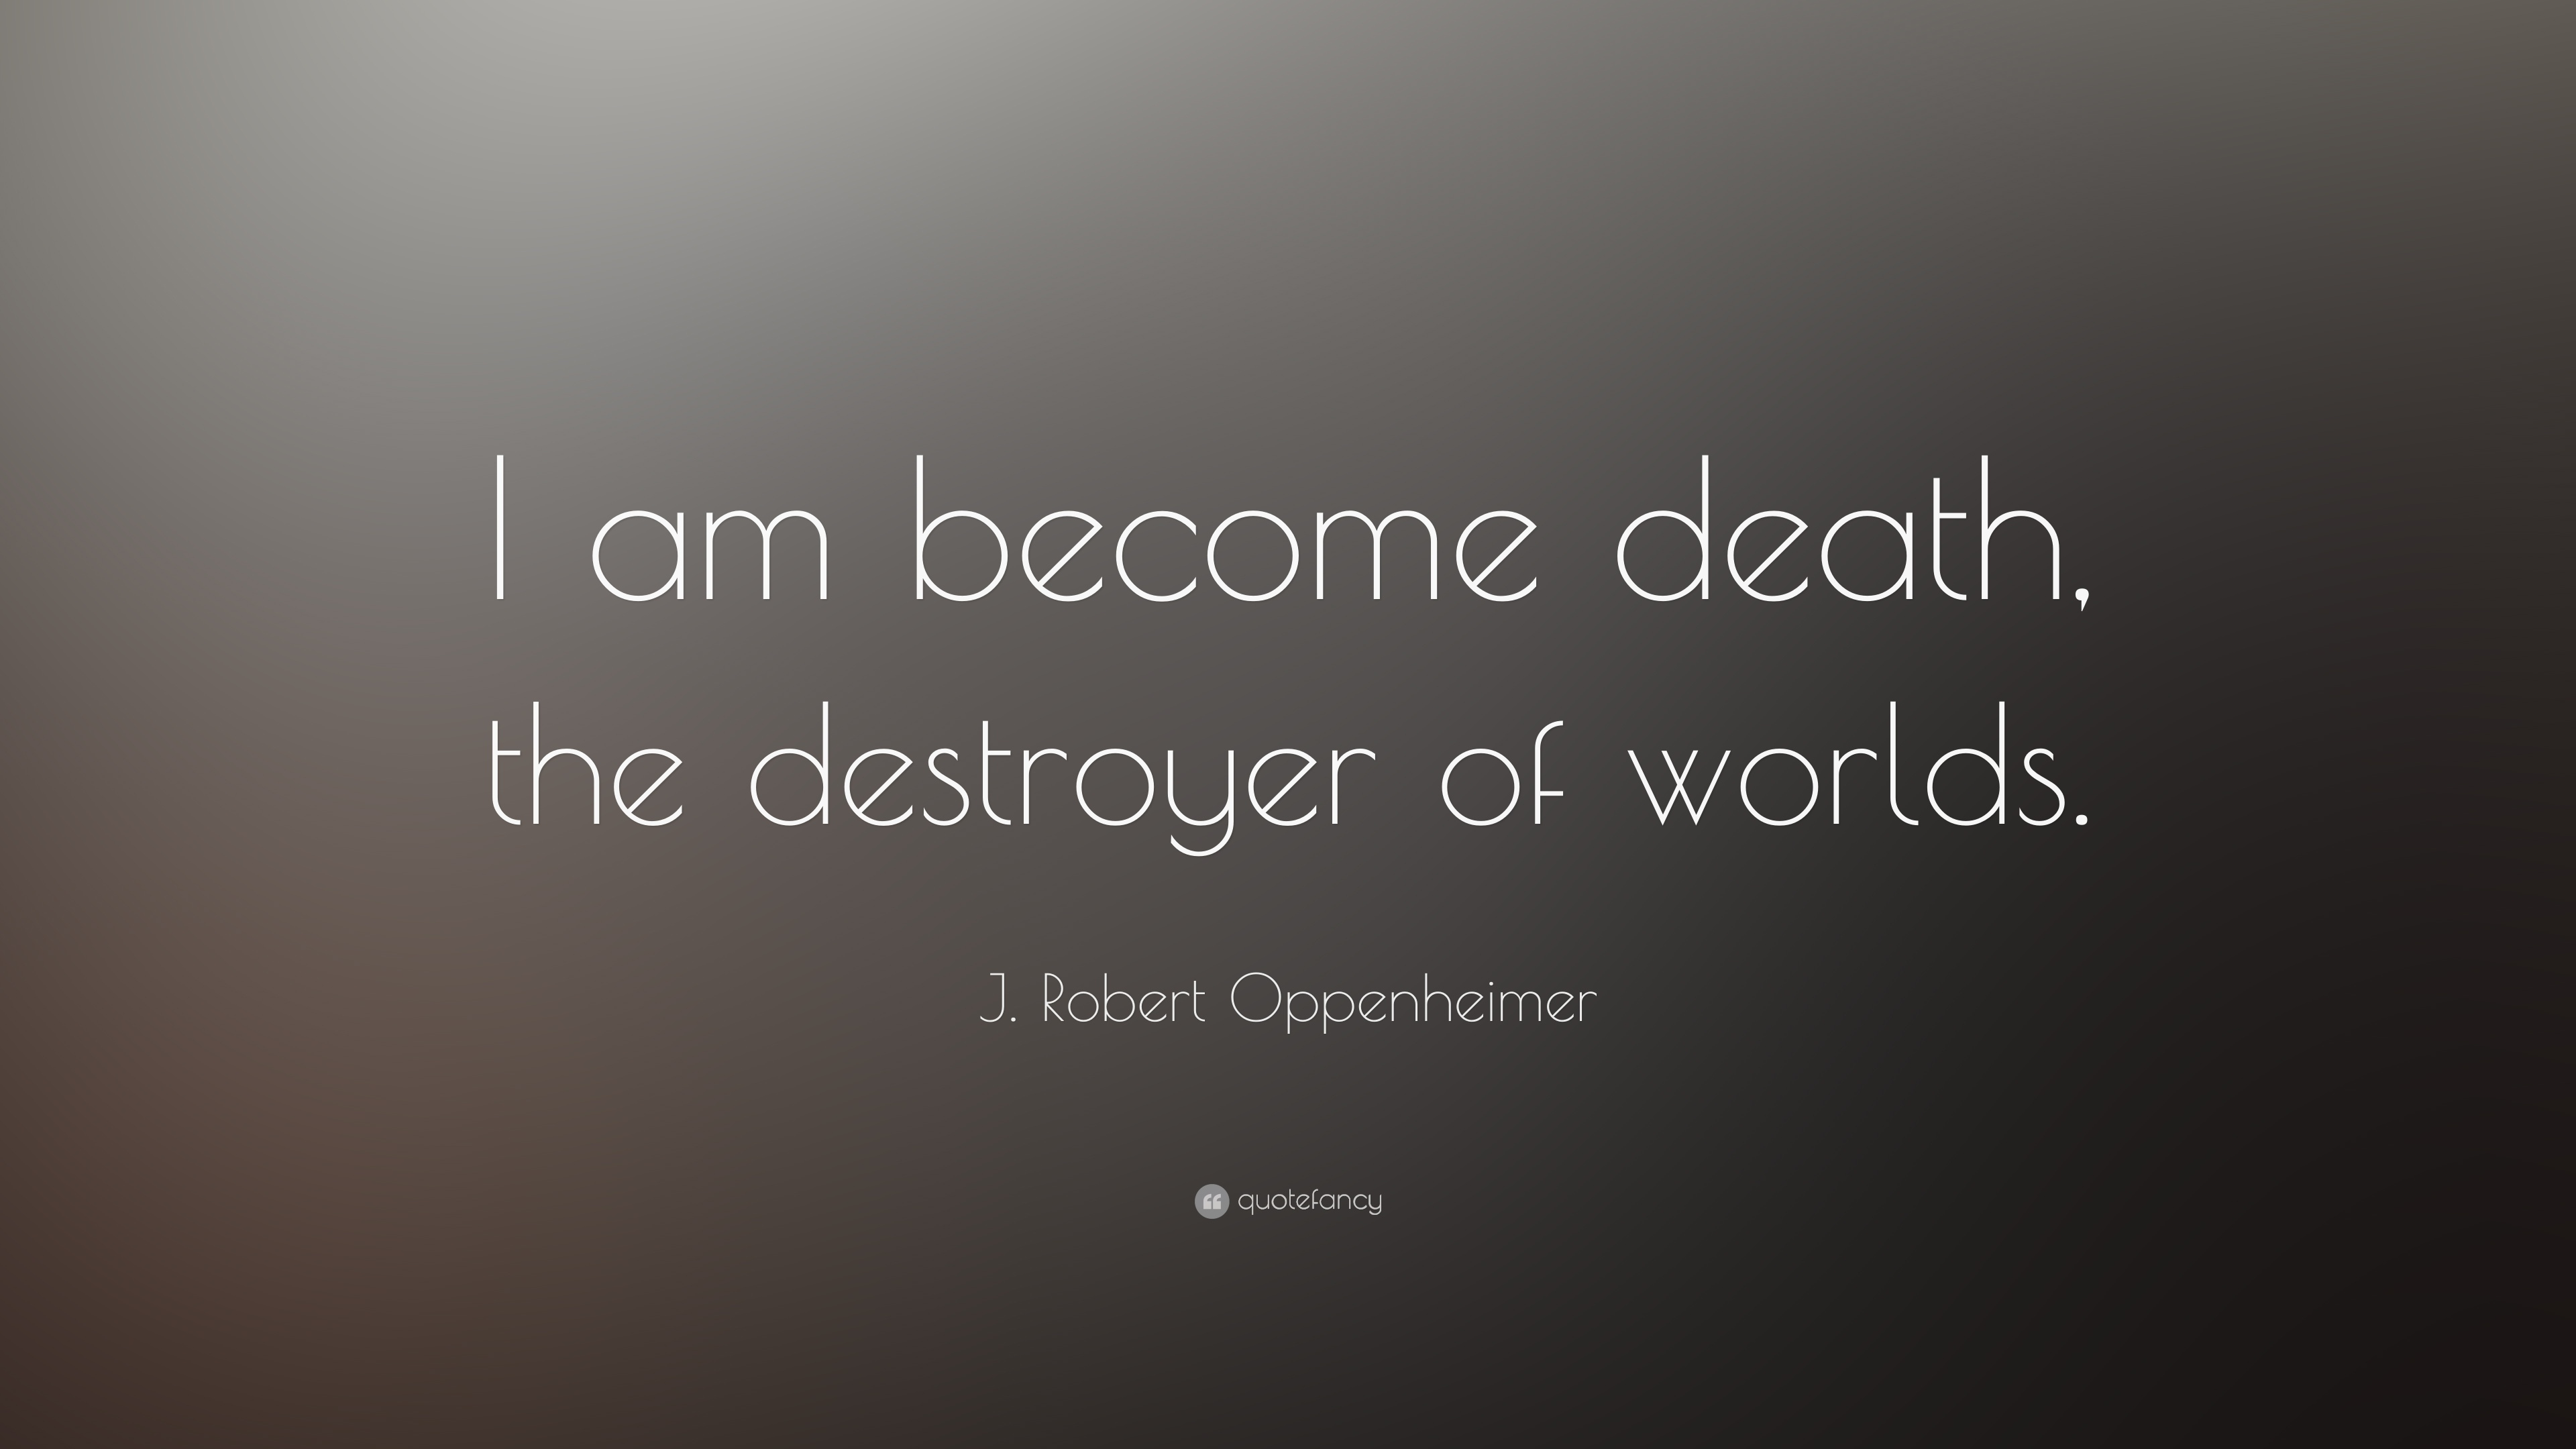 Oppenheimer Quote Jrobert Oppenheimer Quotes 53 Wallpapers  Quotefancy